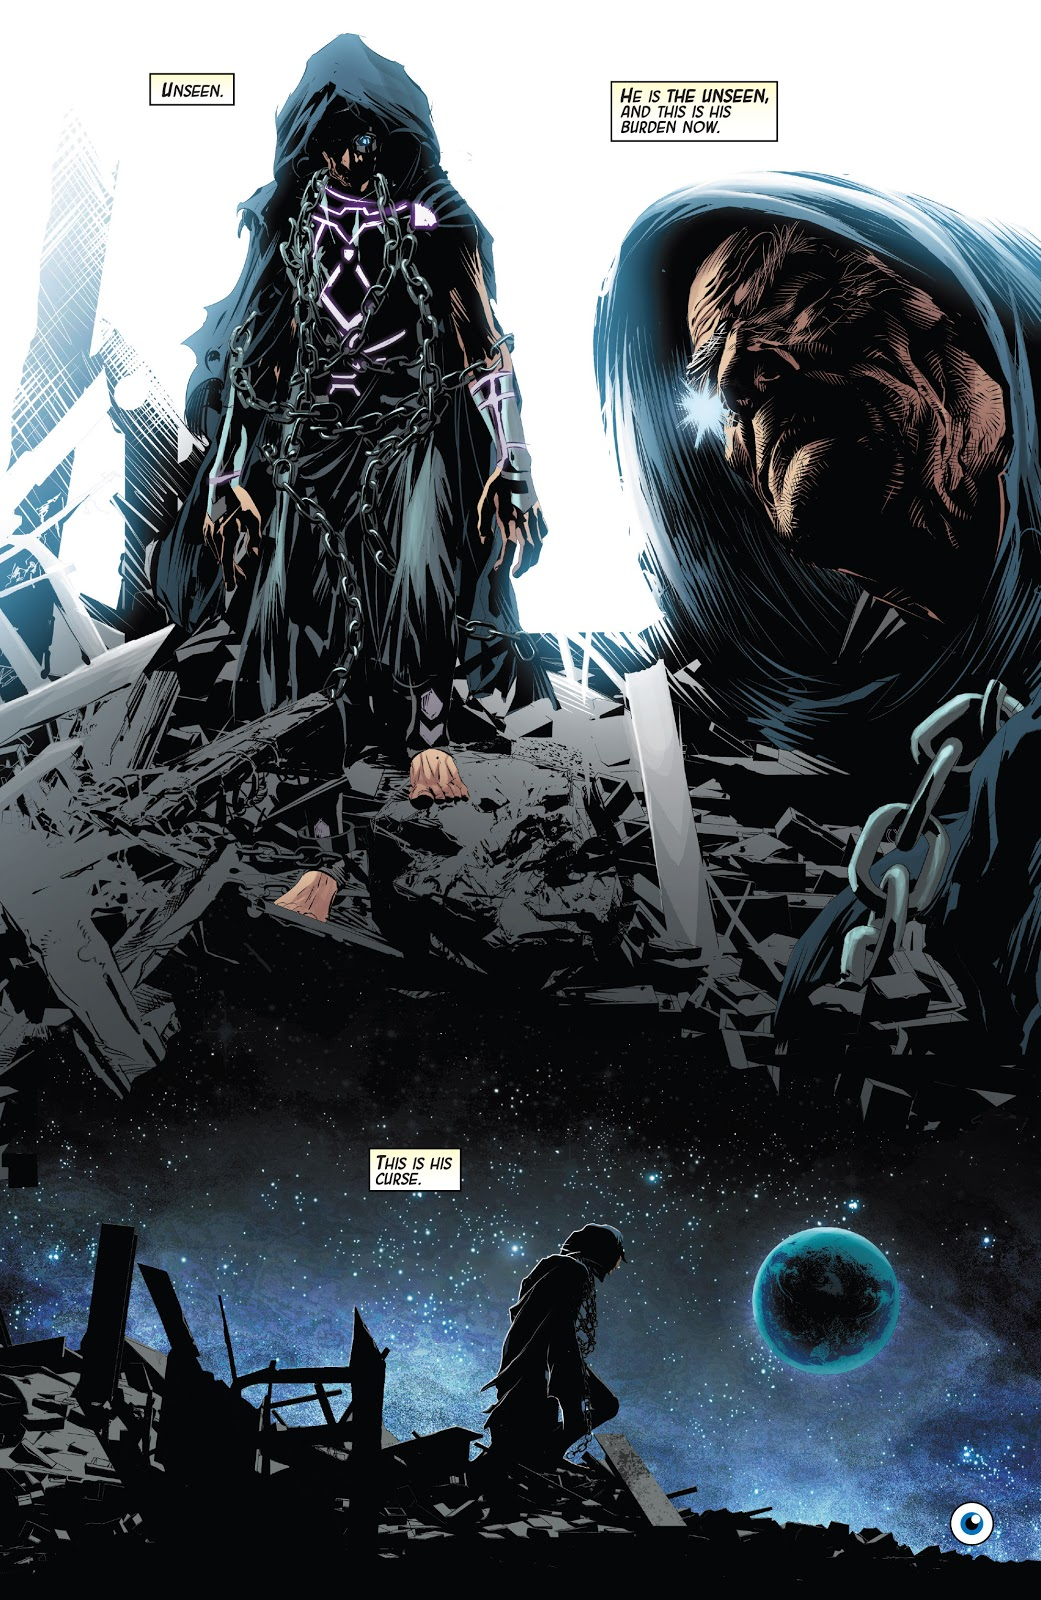 Nick Fury Becomes The Unseen